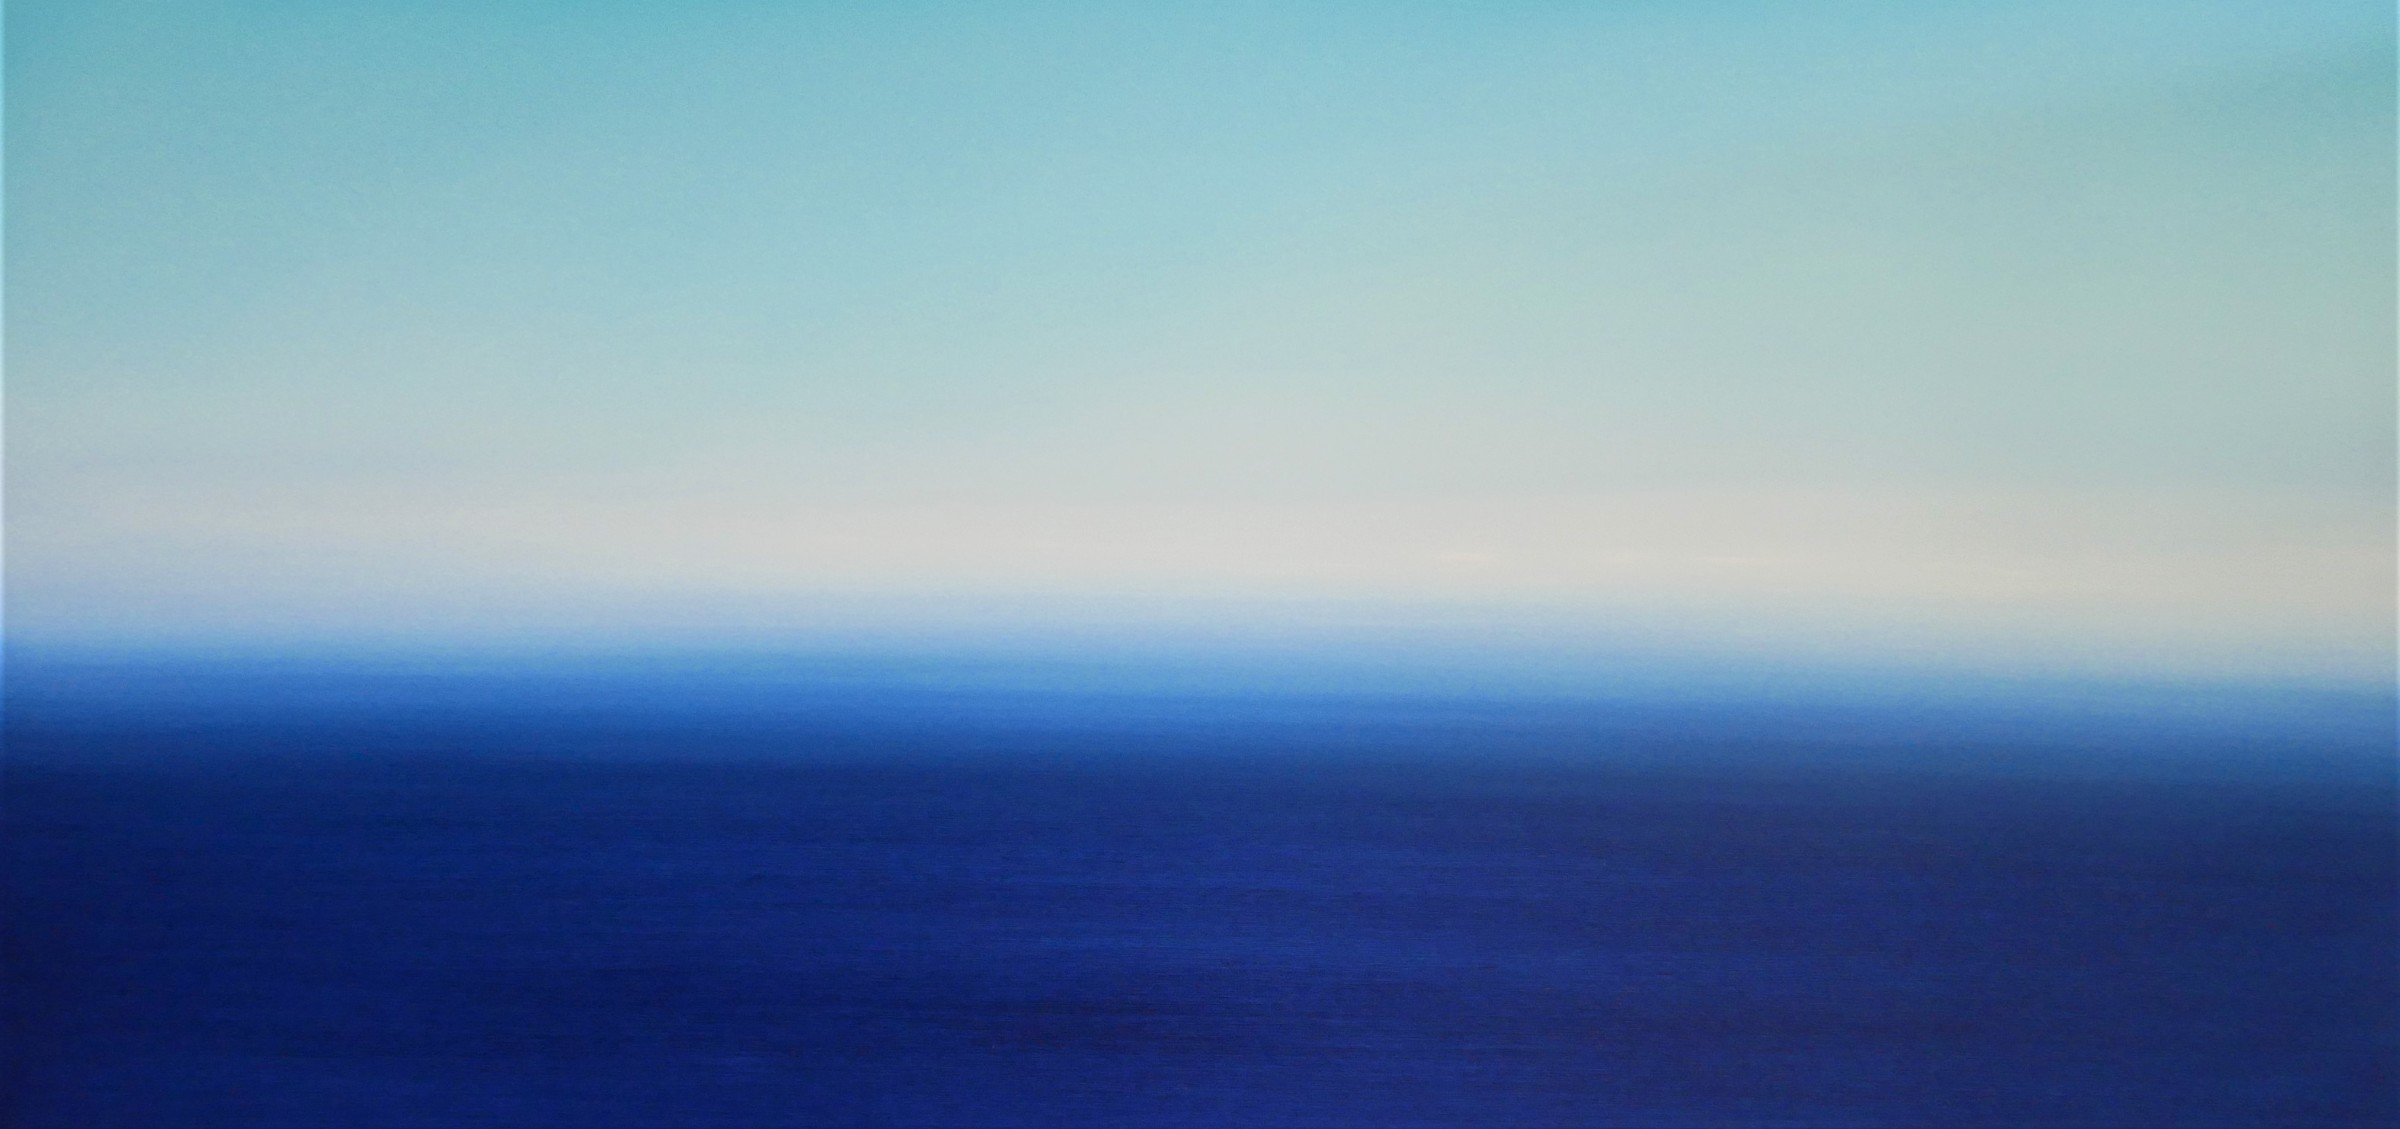 "<span class=""link fancybox-details-link""><a href=""/artists/78-martyn-perryman/works/6605-martyn-perryman-summer-breeze-st-ives-2019/"">View Detail Page</a></span><div class=""artist""><strong>Martyn Perryman</strong></div> <div class=""title""><em>Summer Breeze St Ives</em>, 2019</div> <div class=""signed_and_dated"">Signed on the reverse</div> <div class=""medium"">Oil on canvas</div> <div class=""dimensions"">70 x 140cm</div><div class=""price"">£1,200.00</div><div class=""copyright_line"">Own Art £120 x 10 months, 0% APR</div>"